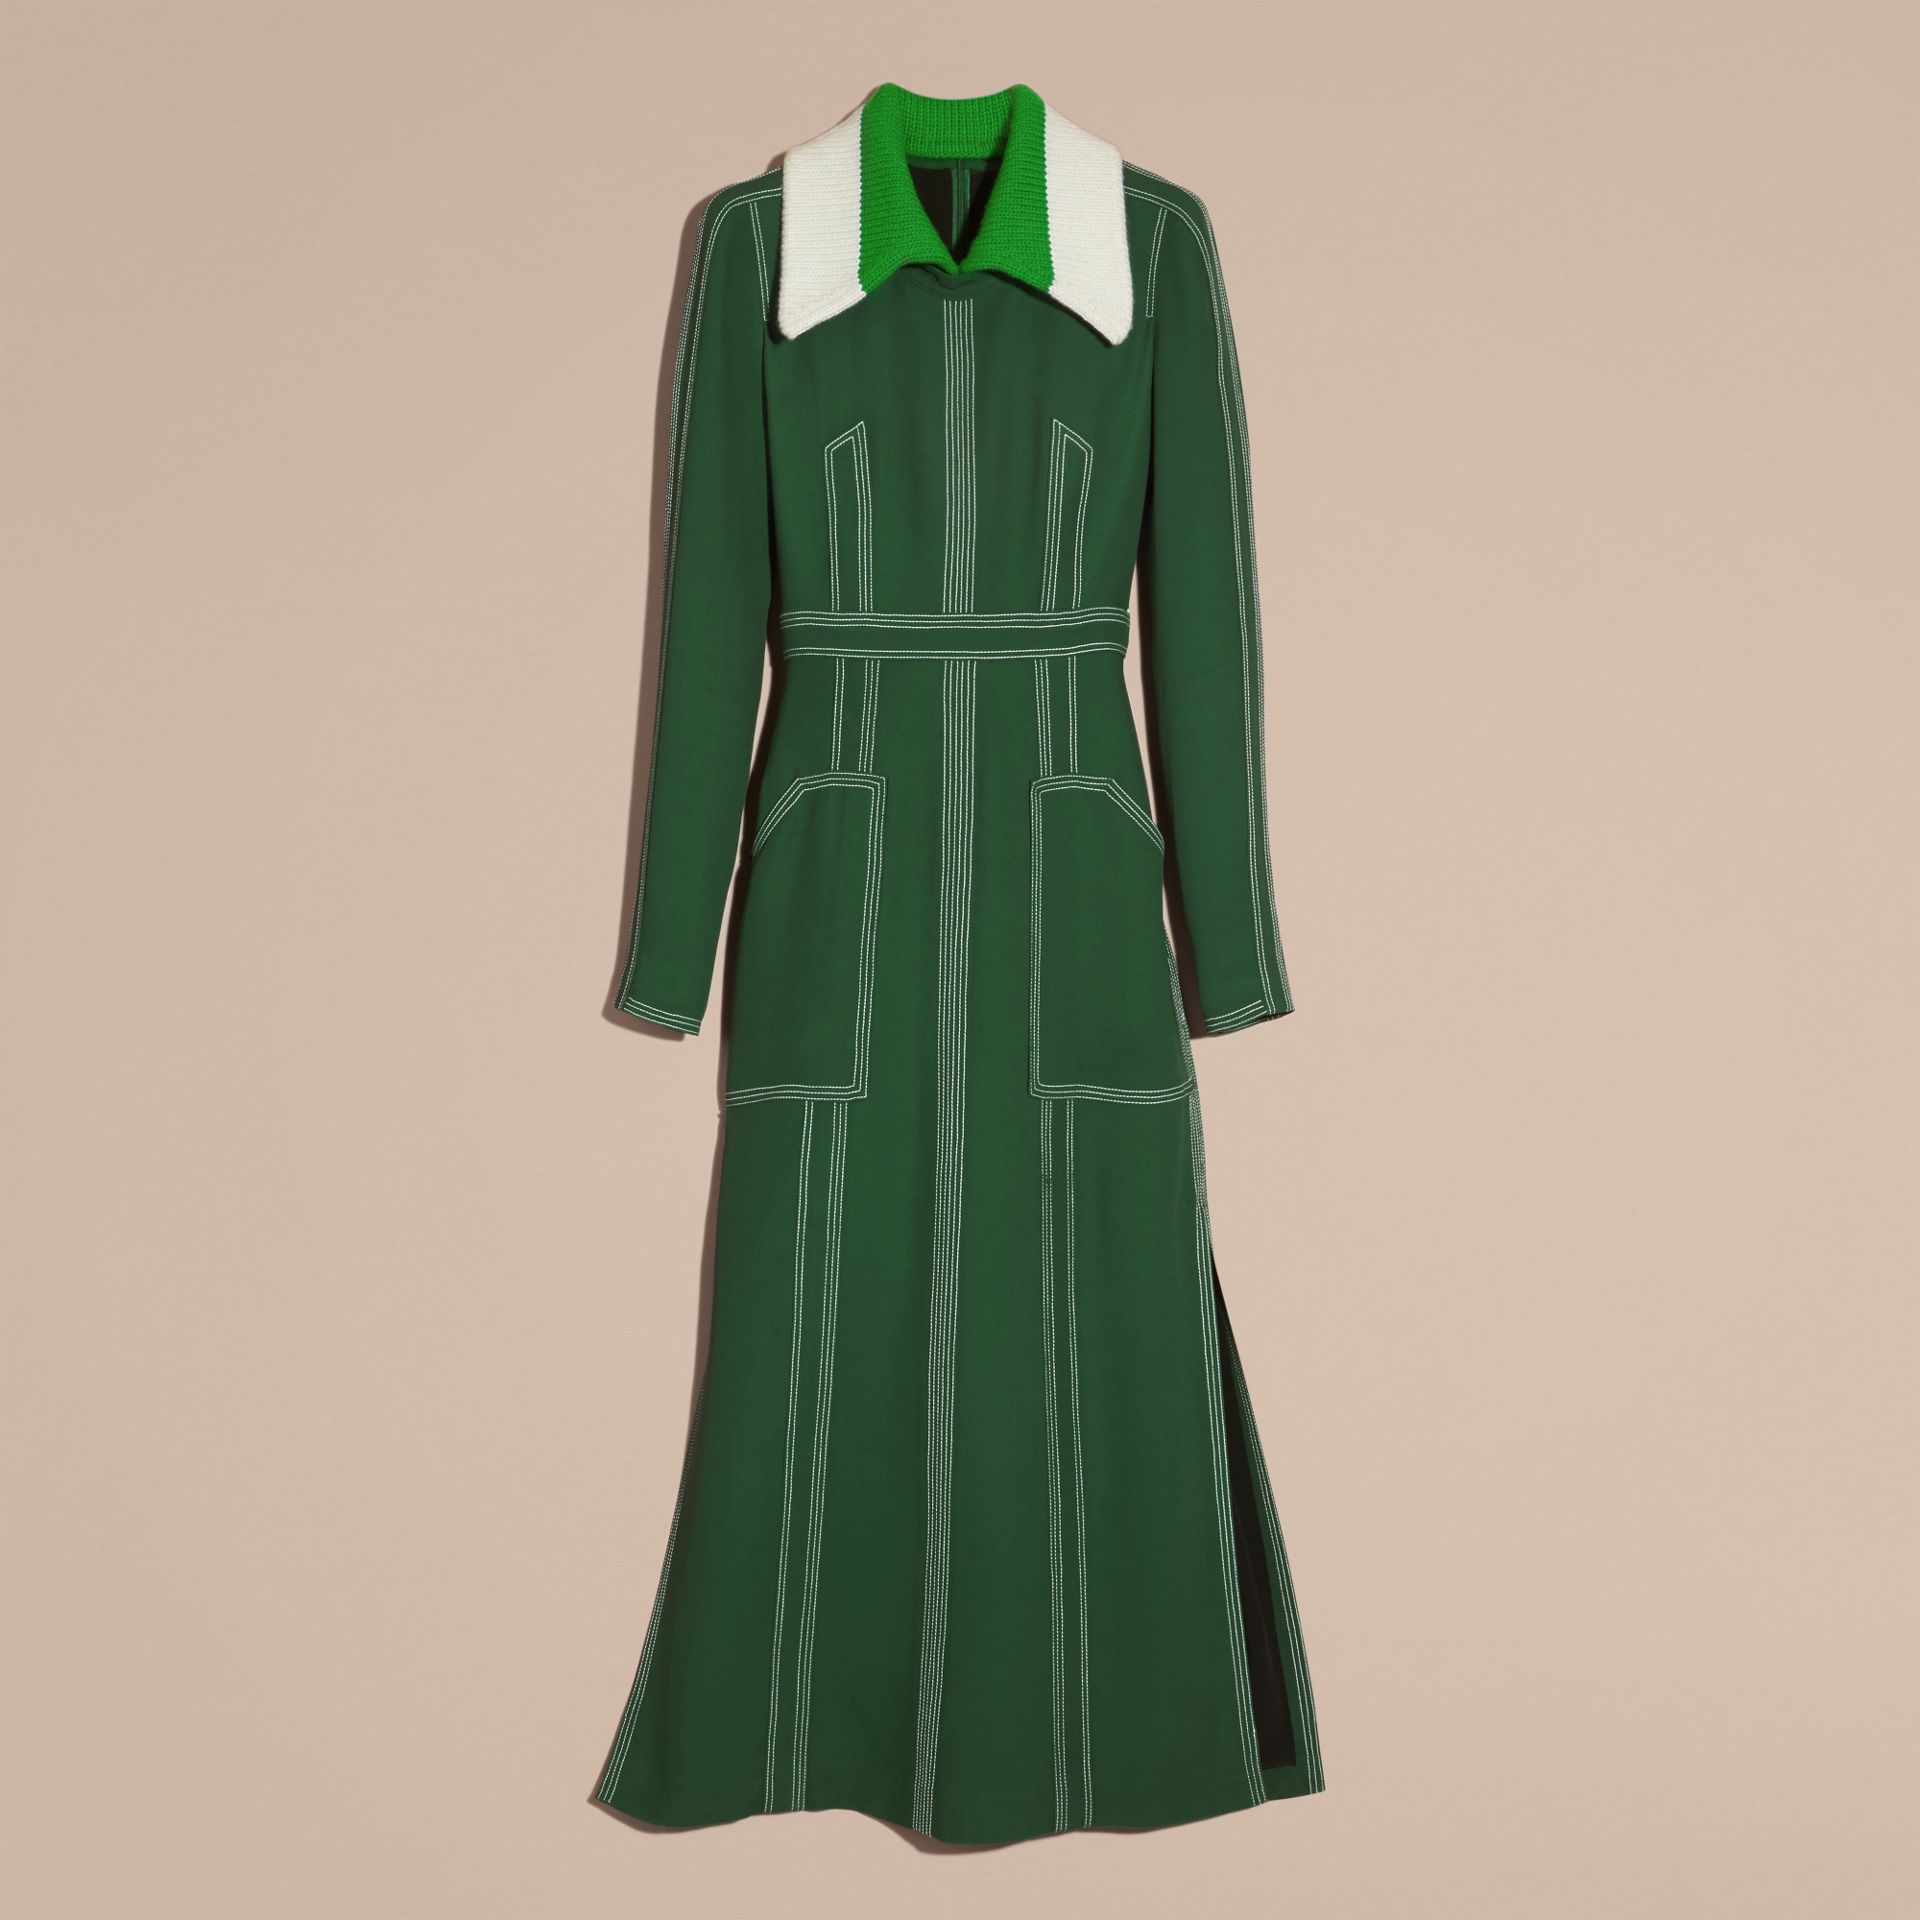 Deep green Topstitch Detail Georgette Dress with Knitted Collar - gallery image 4